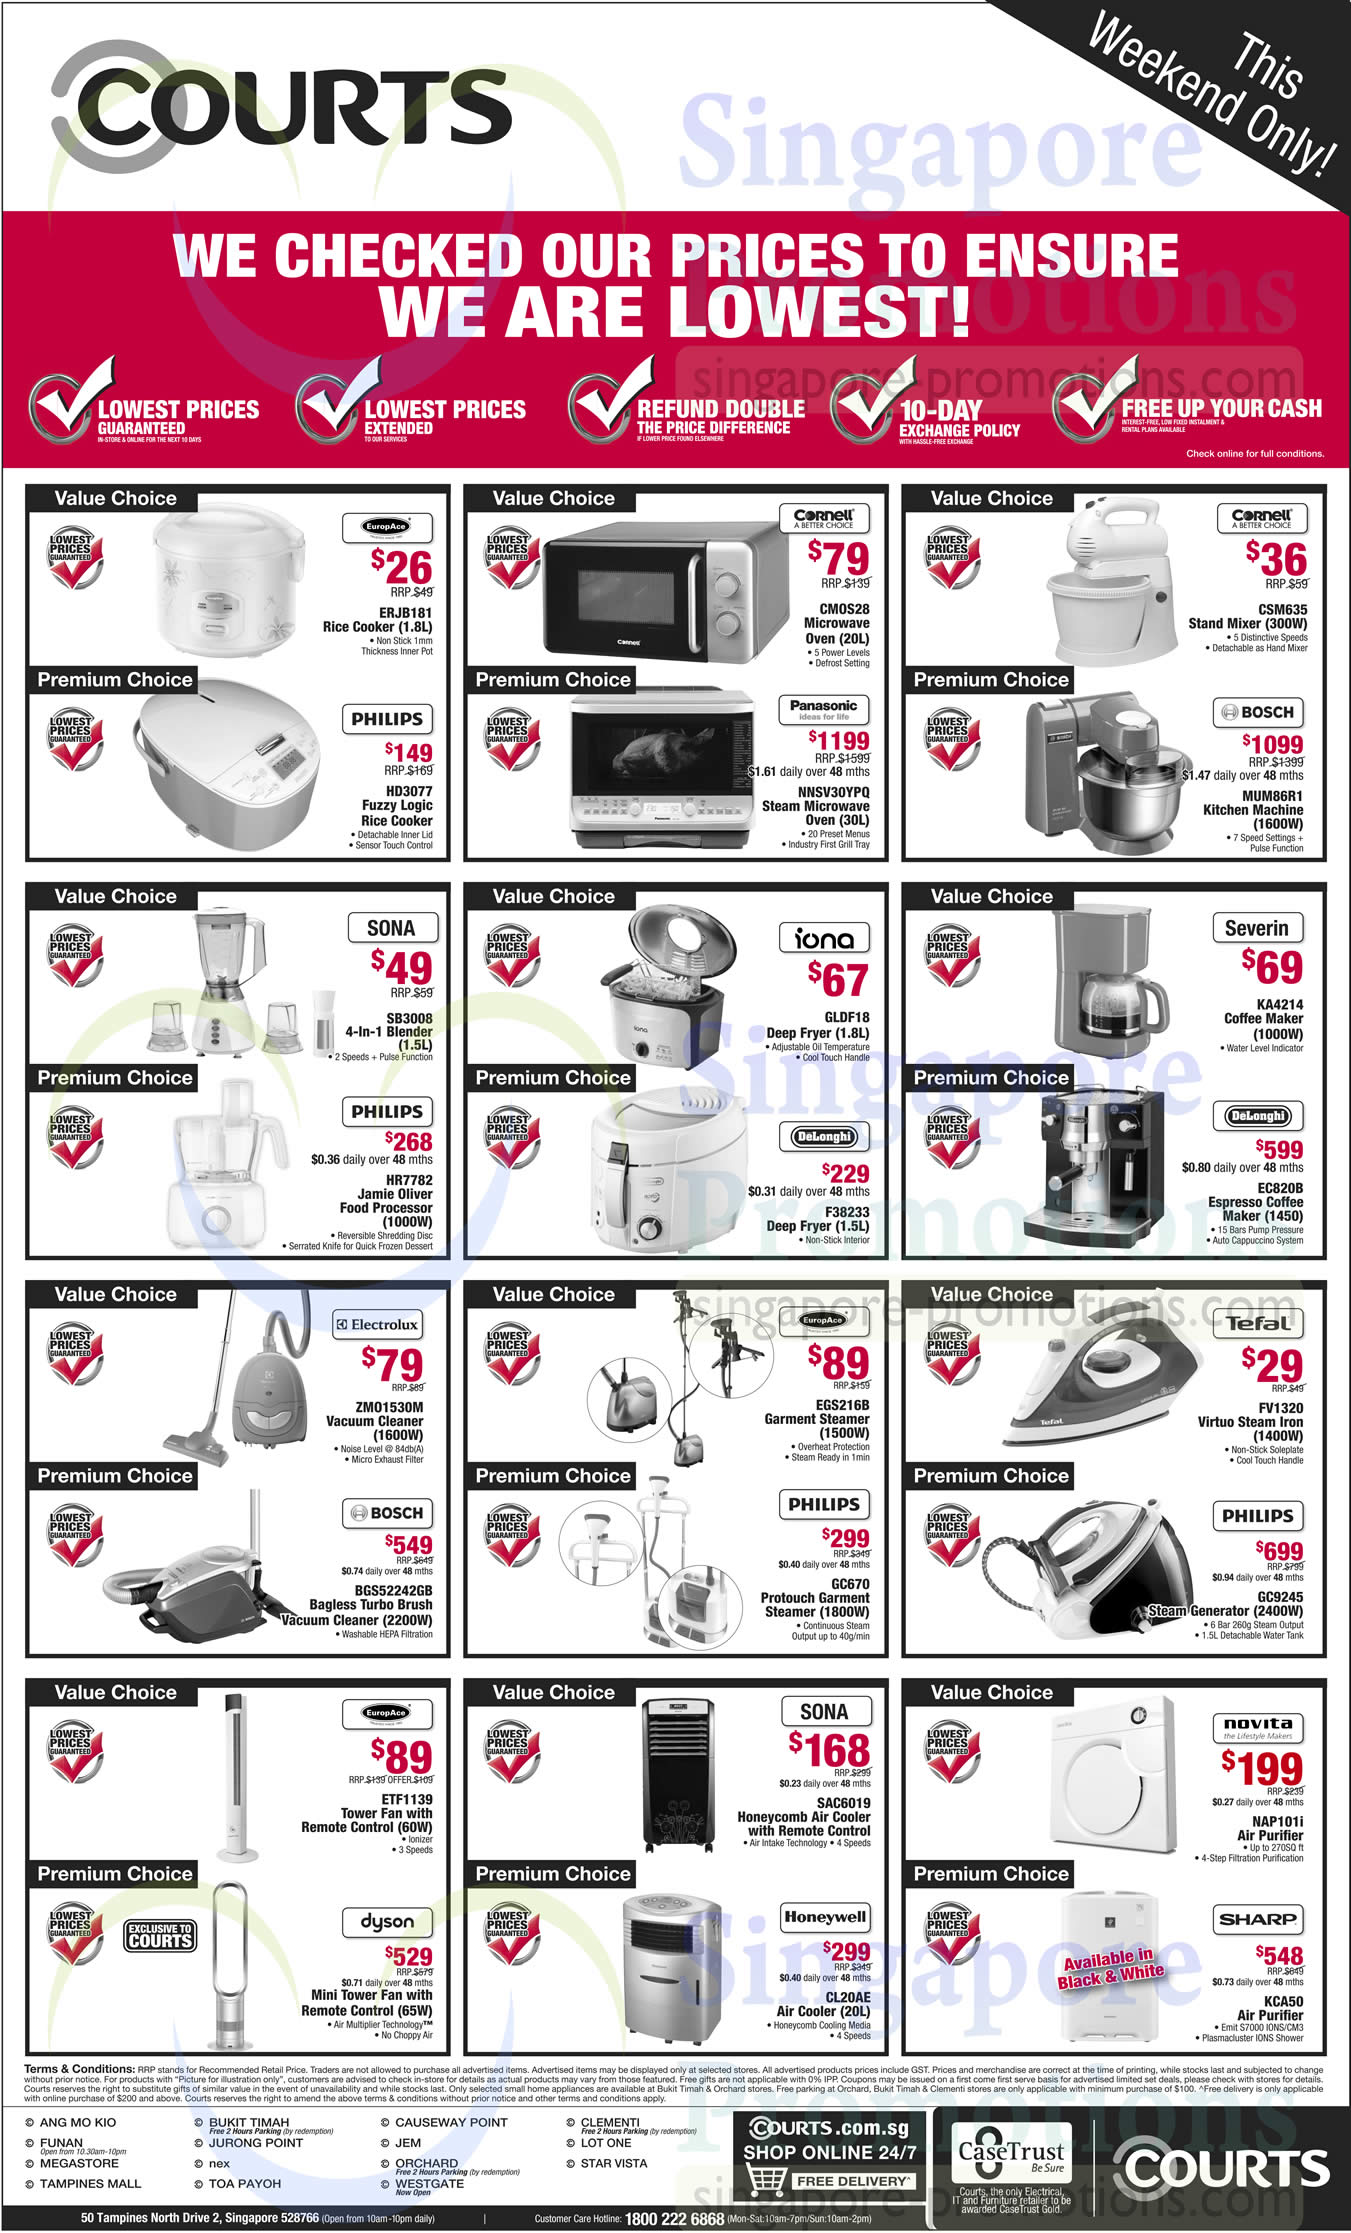 Uncategorized Kitchen Appliances Price home kitchen appliances philips sona electrolux dyson iona tefal novita sharp